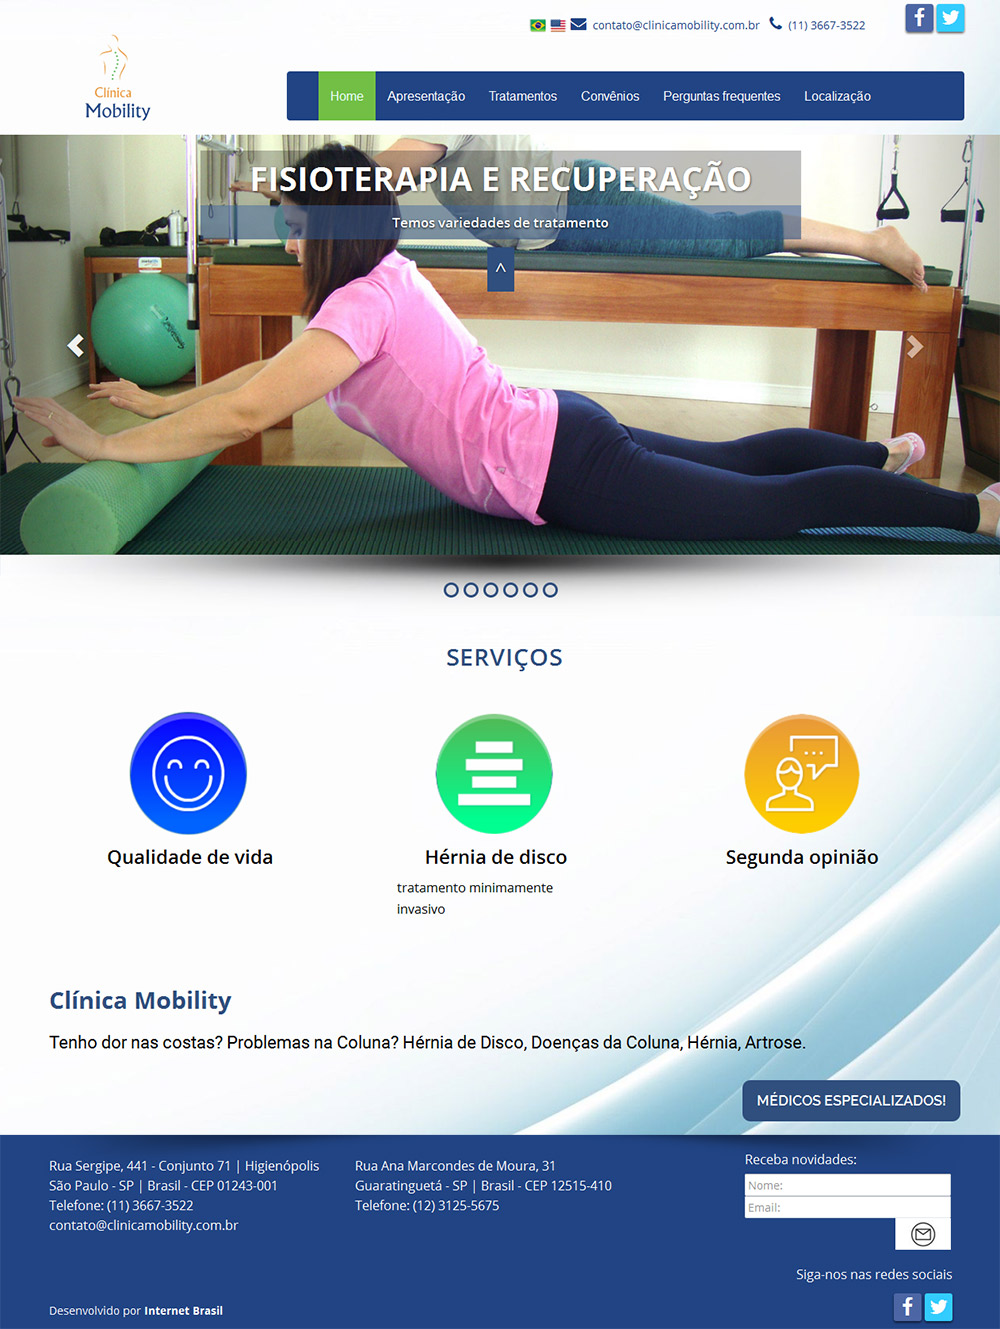 Site – Clinica Mobility